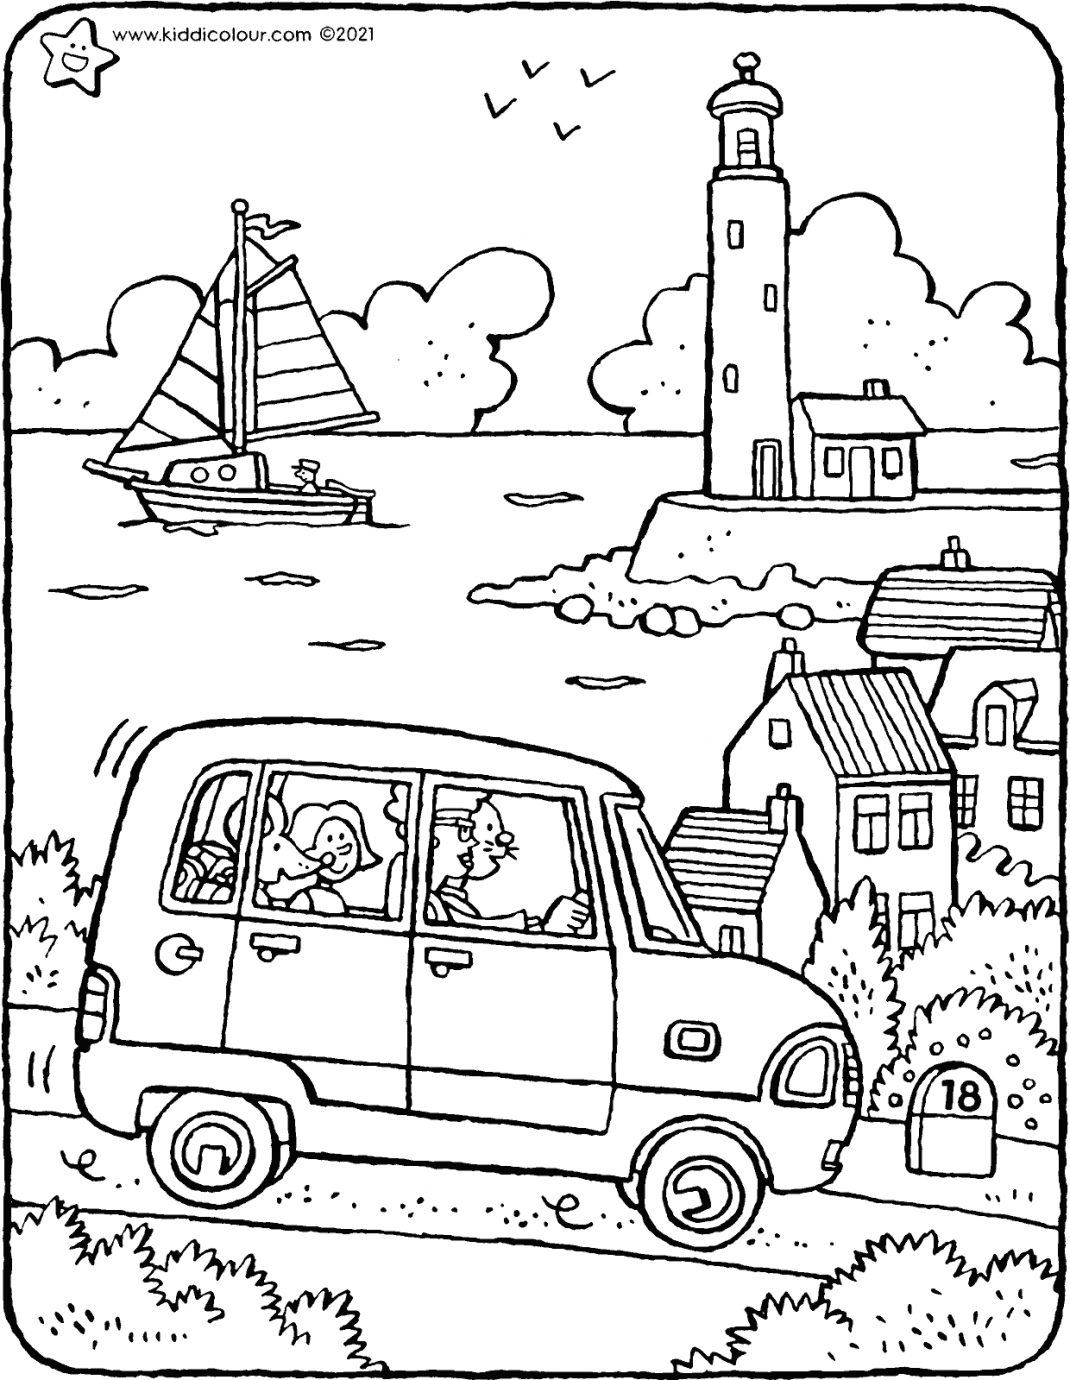 Emma and Thomas go on holiday to the seaside colouring page drawing picture 01V